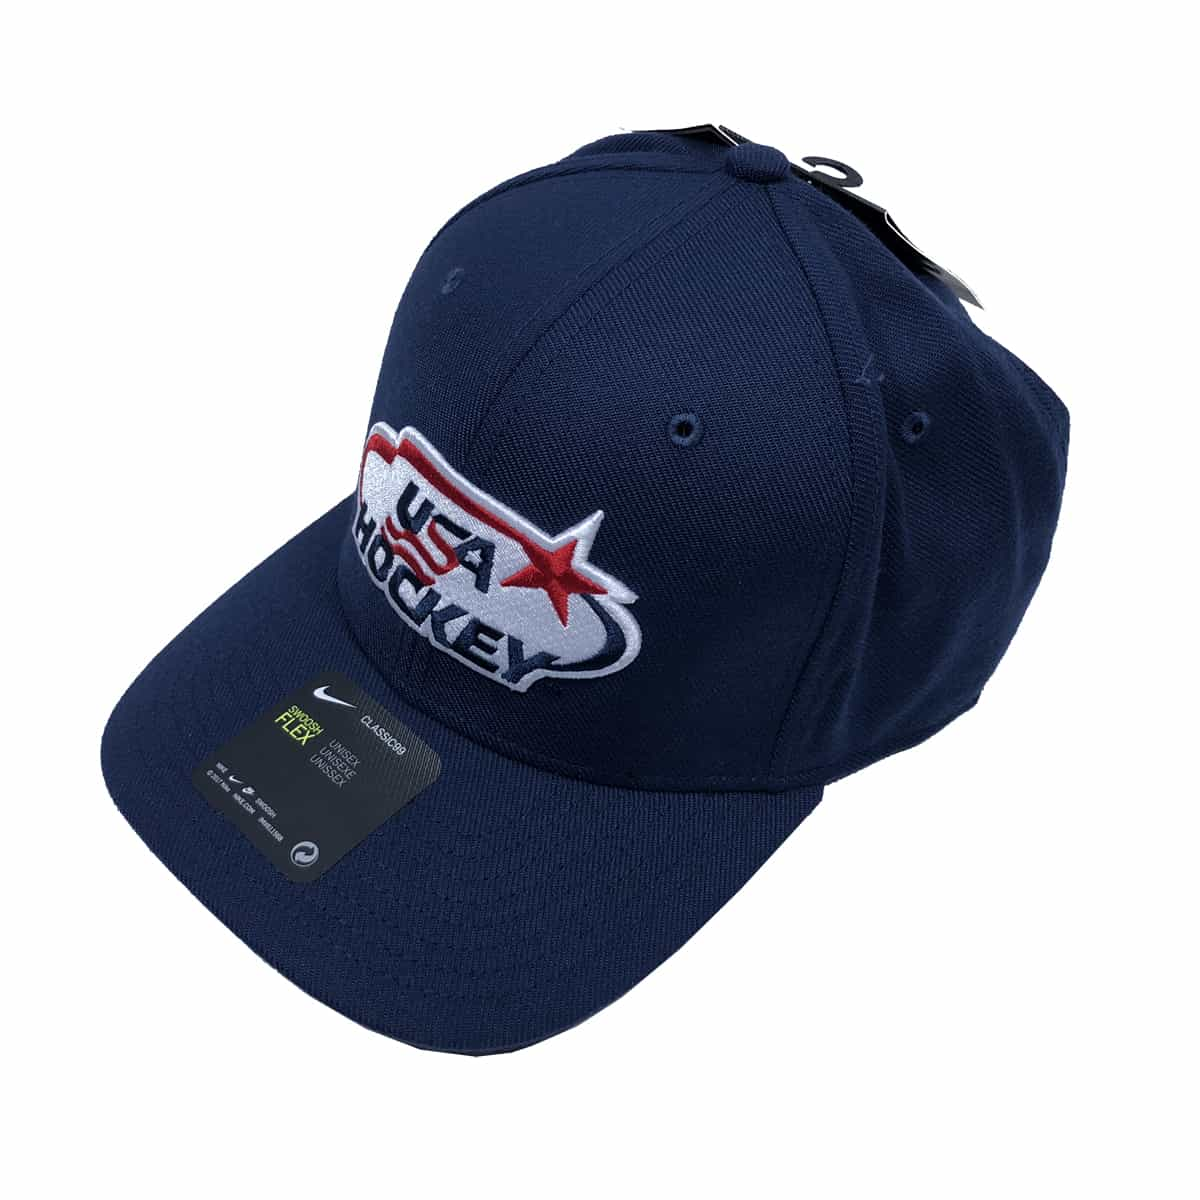 USA Hockey Nike Classic 99 DRI-FIT Flex Hat in Navy (Front)